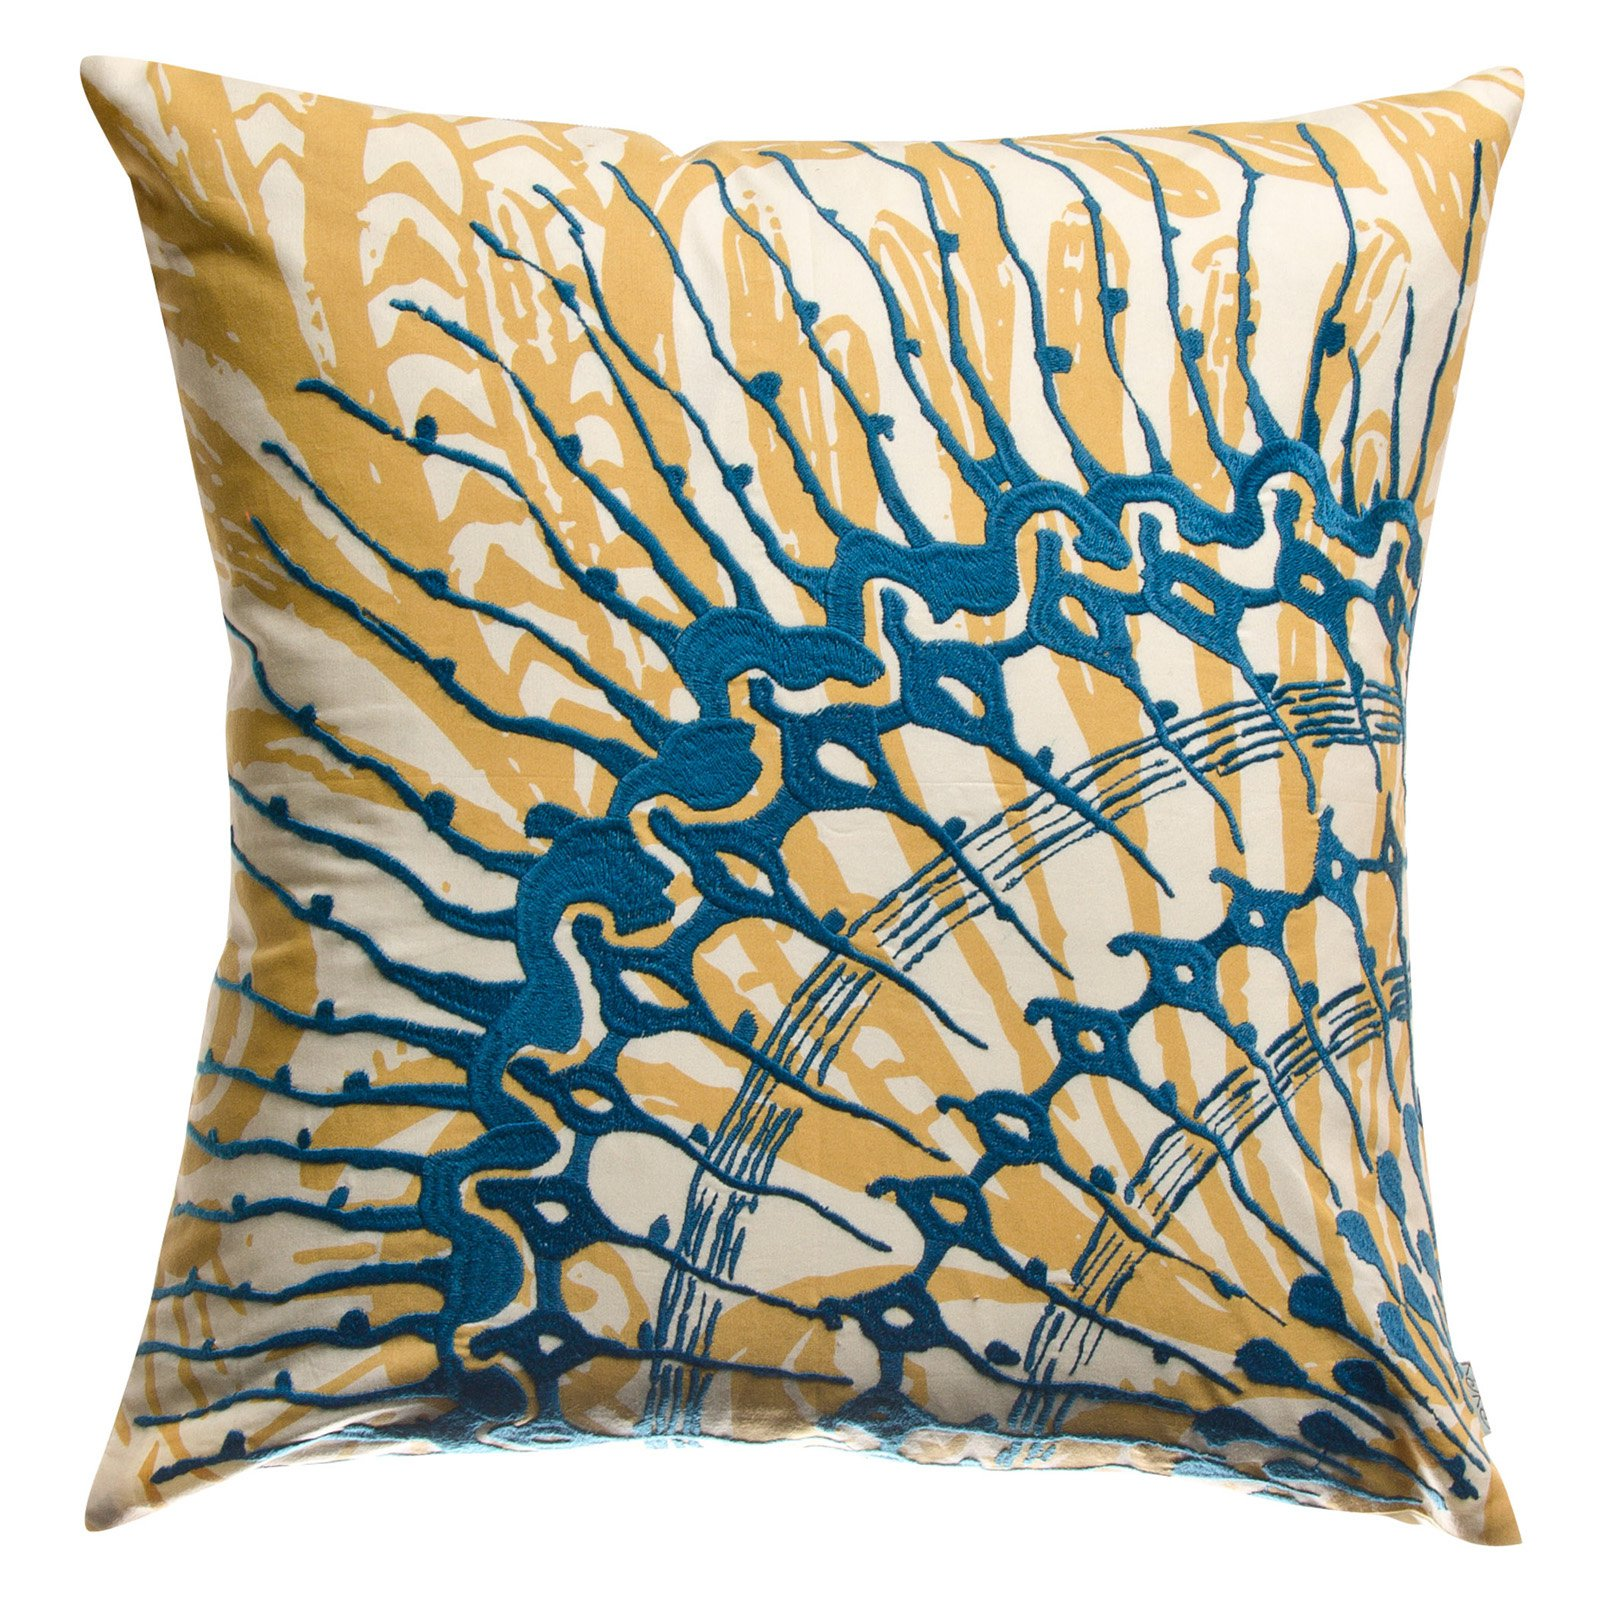 Koko Company 18 in. Water Square Pillow - Blue/Mustard